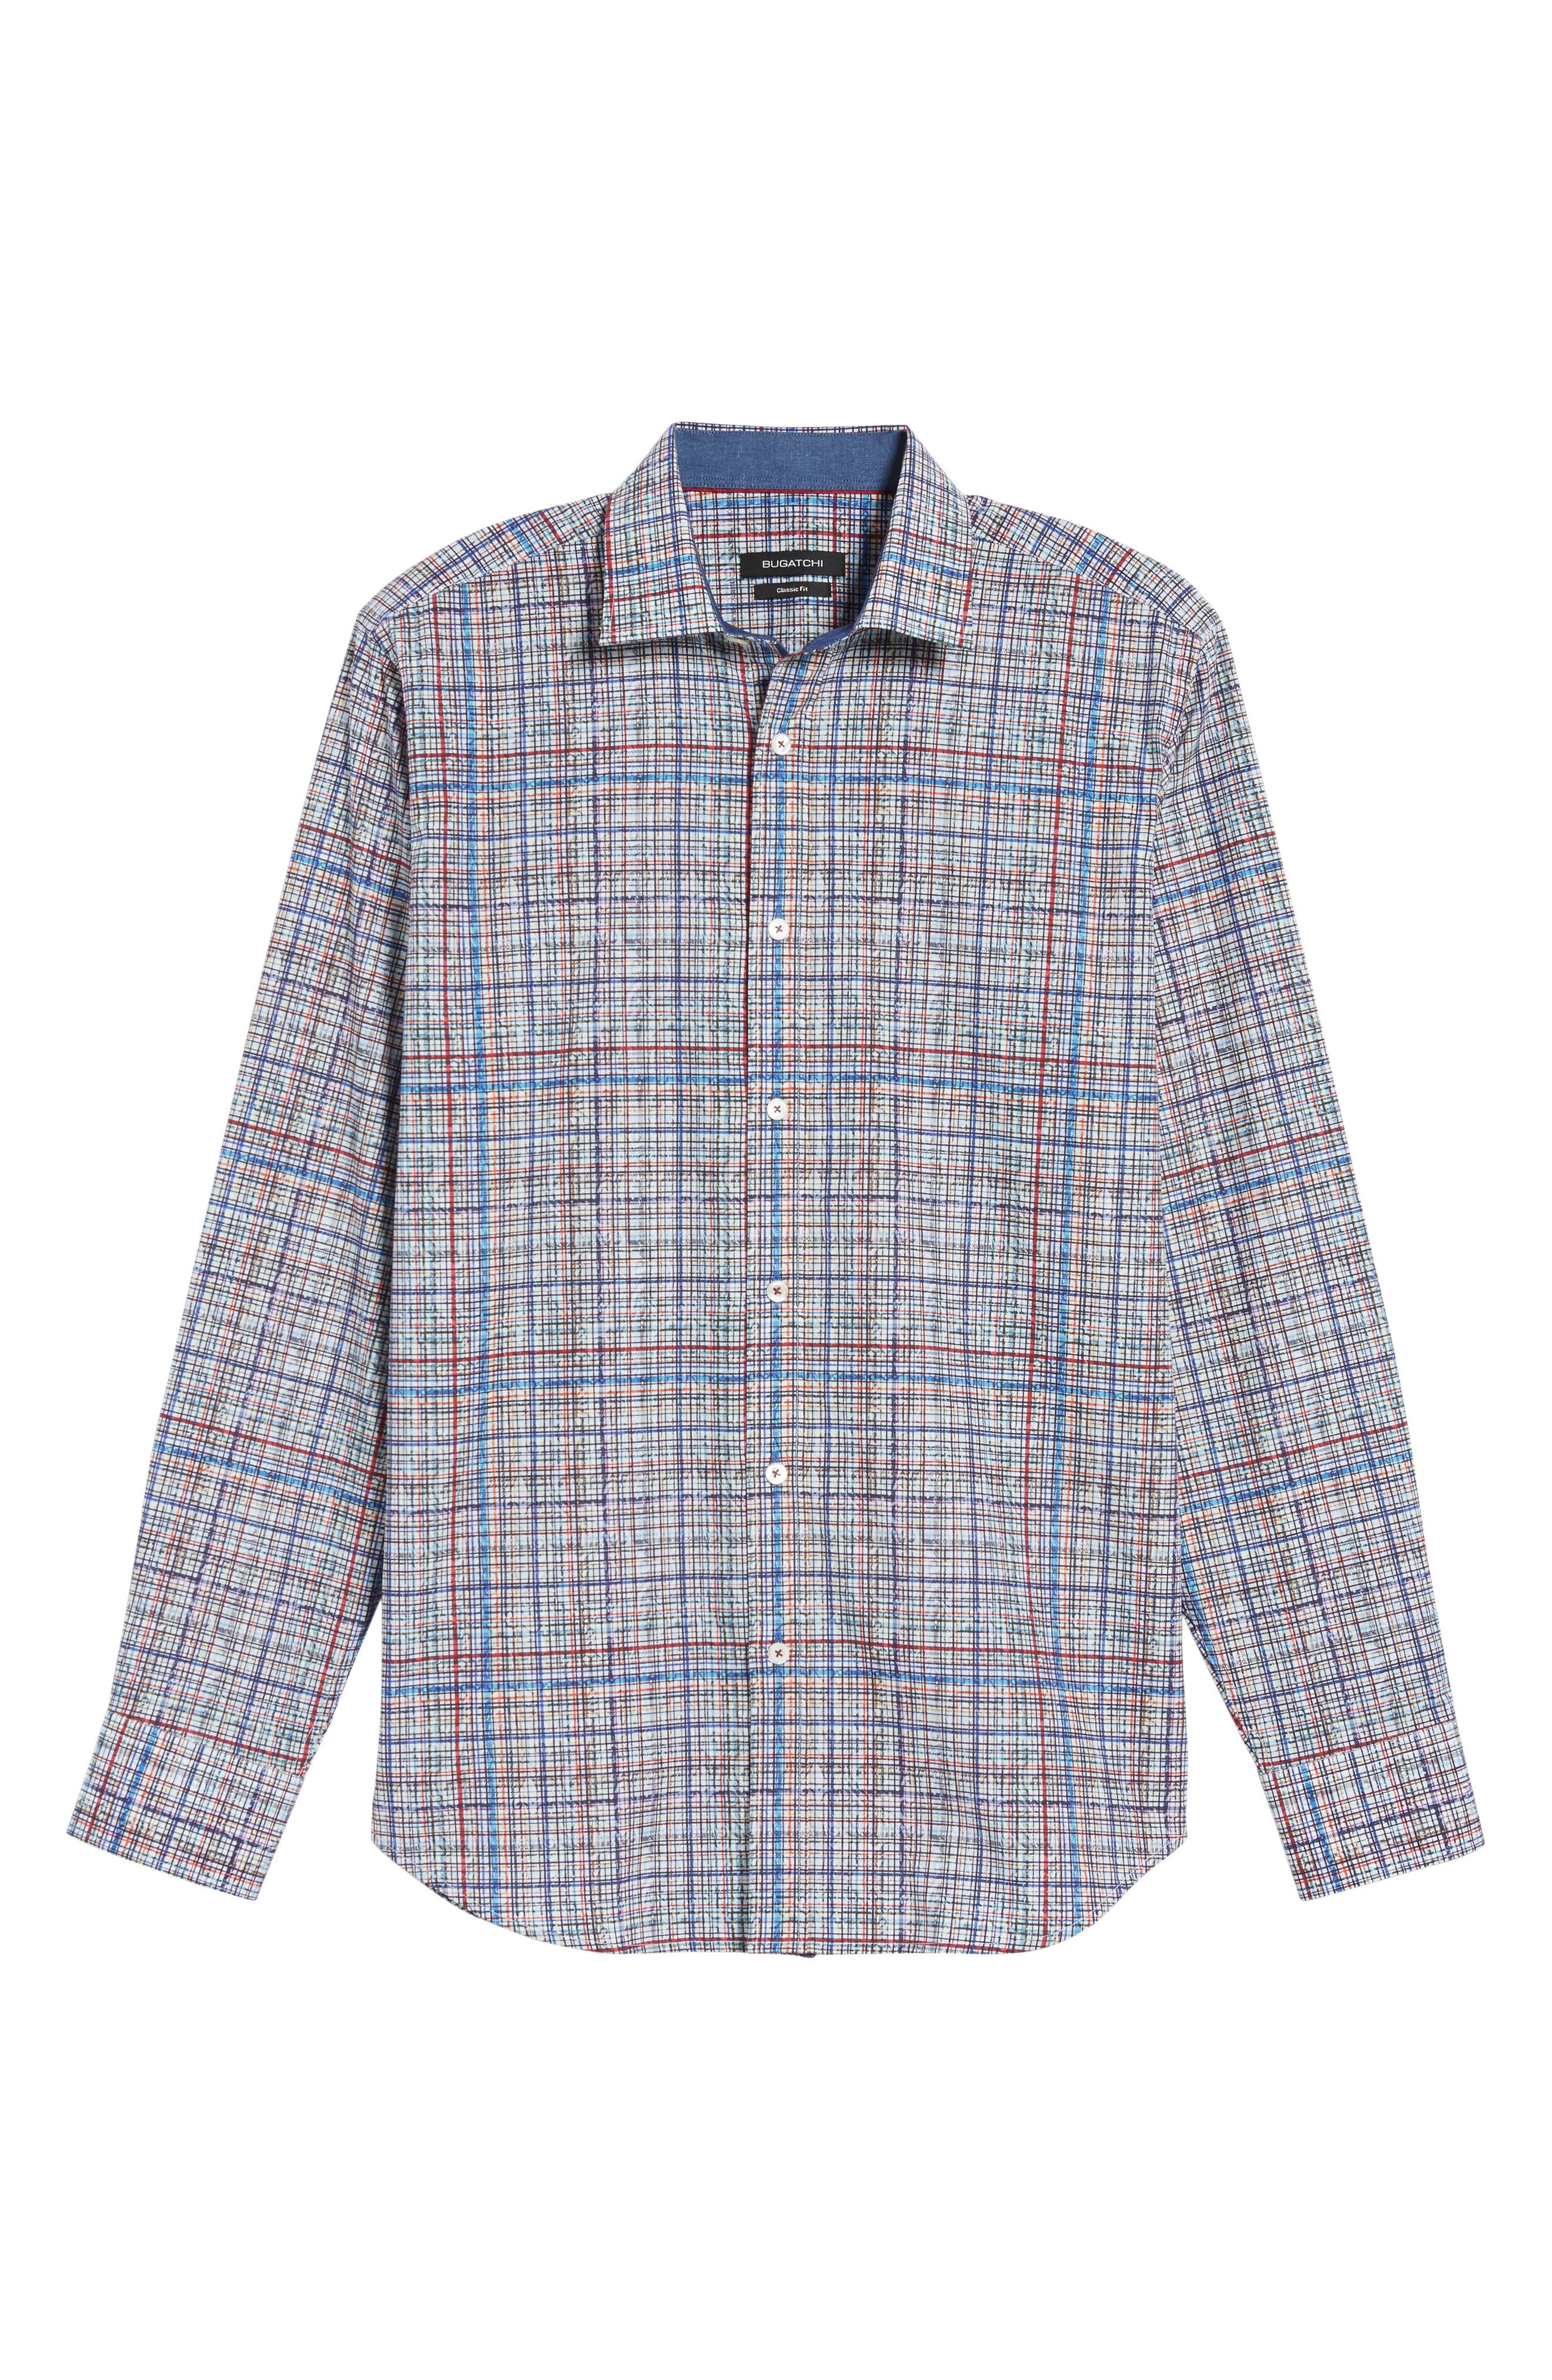 Classic Fit Abstract Plaid Sport Shirt,                             Alternate thumbnail 6, color,